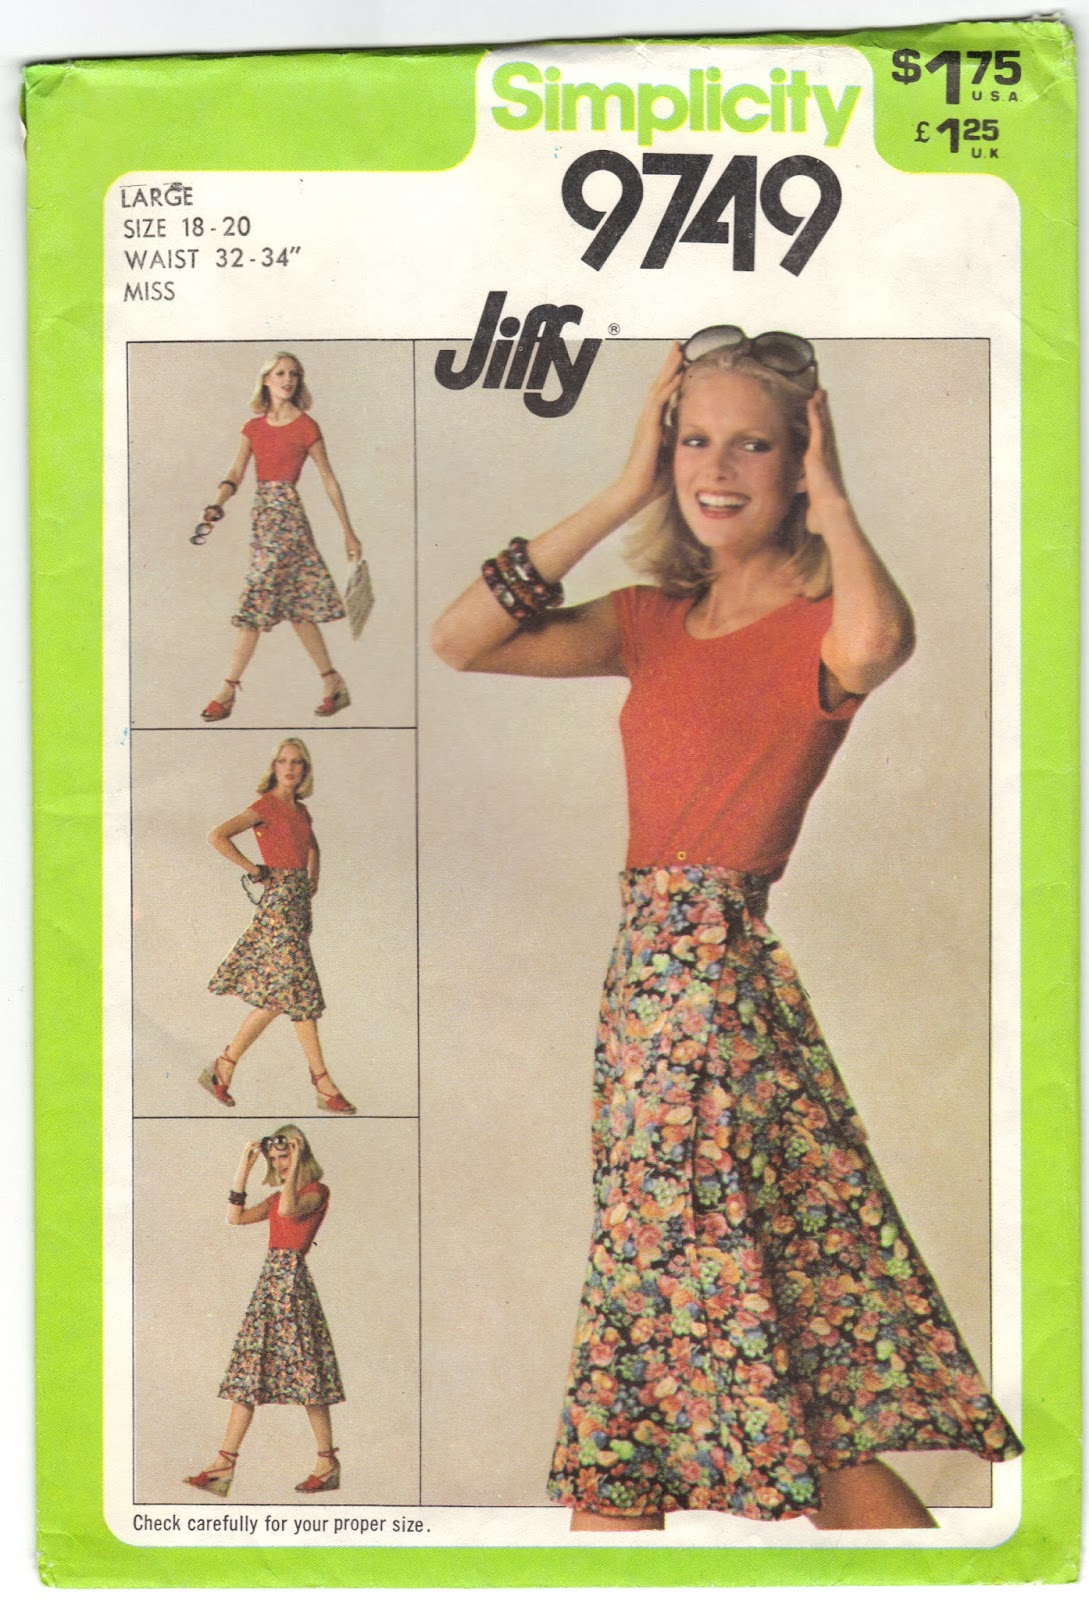 http://www.articents.com/BearyAmazing/listing/Pattern-Skirt-Front-Wrap-Sz-Lge-18---20--S9749-CUT#sthash.URXJCKi8.dpbs